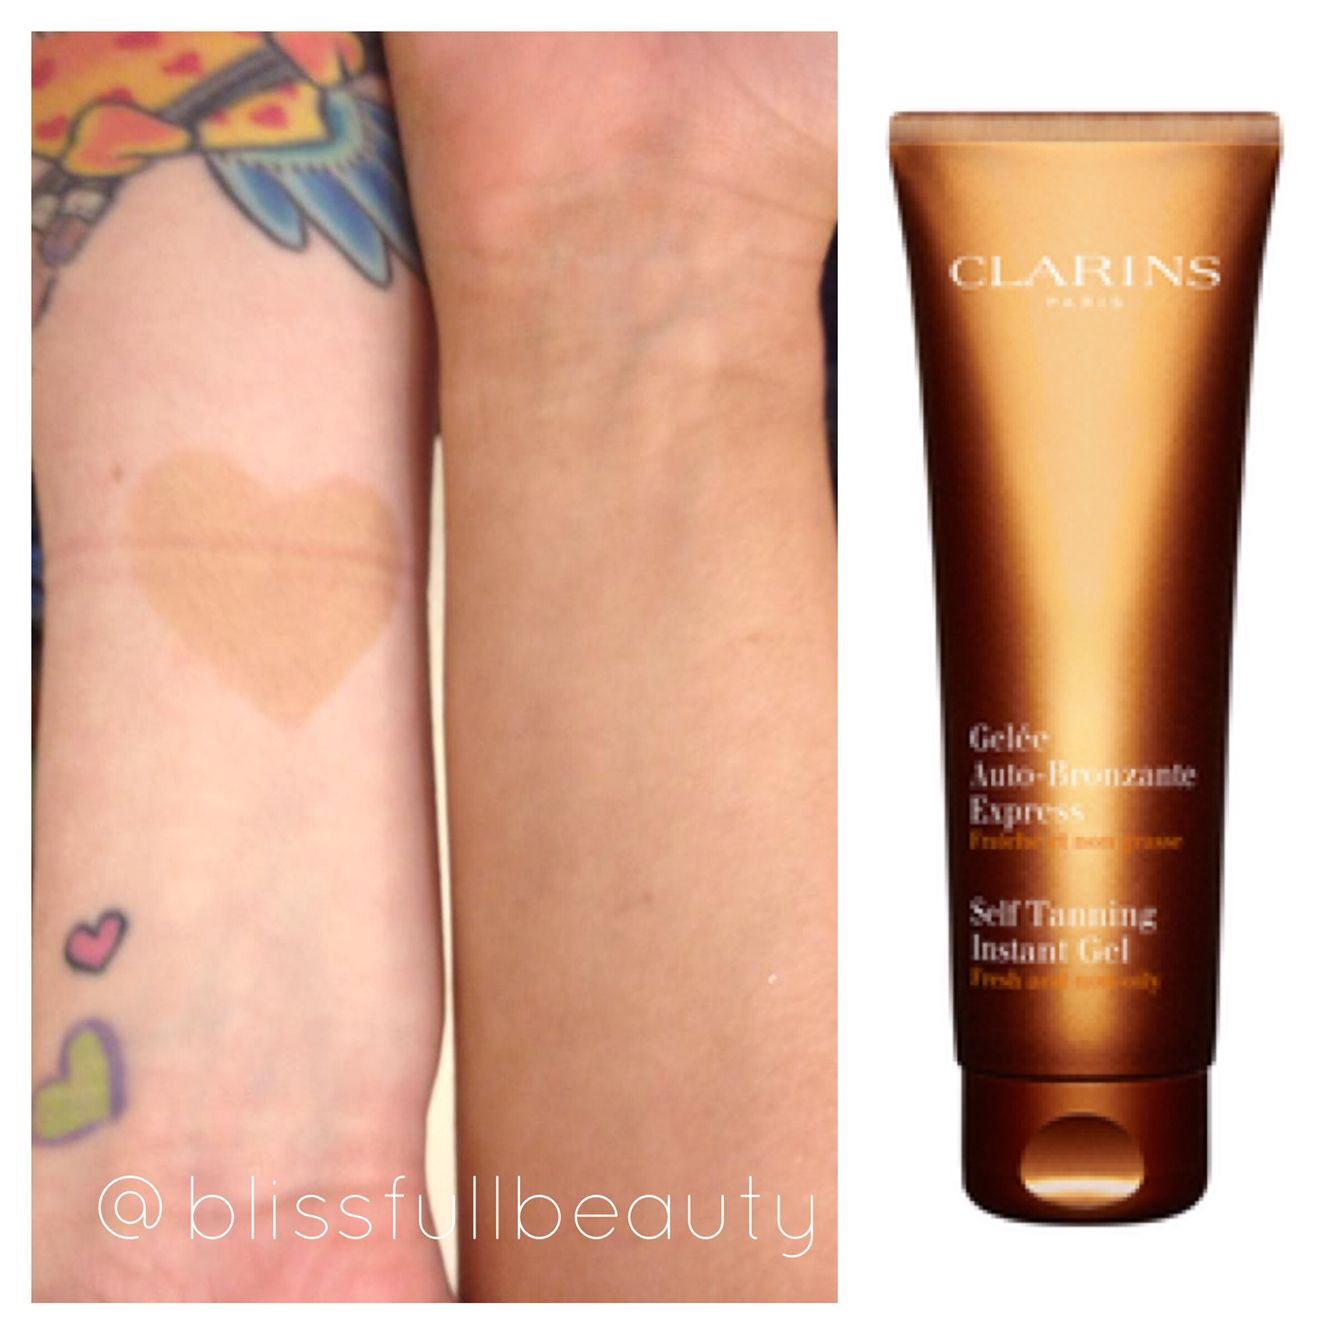 clarins self tanning instant